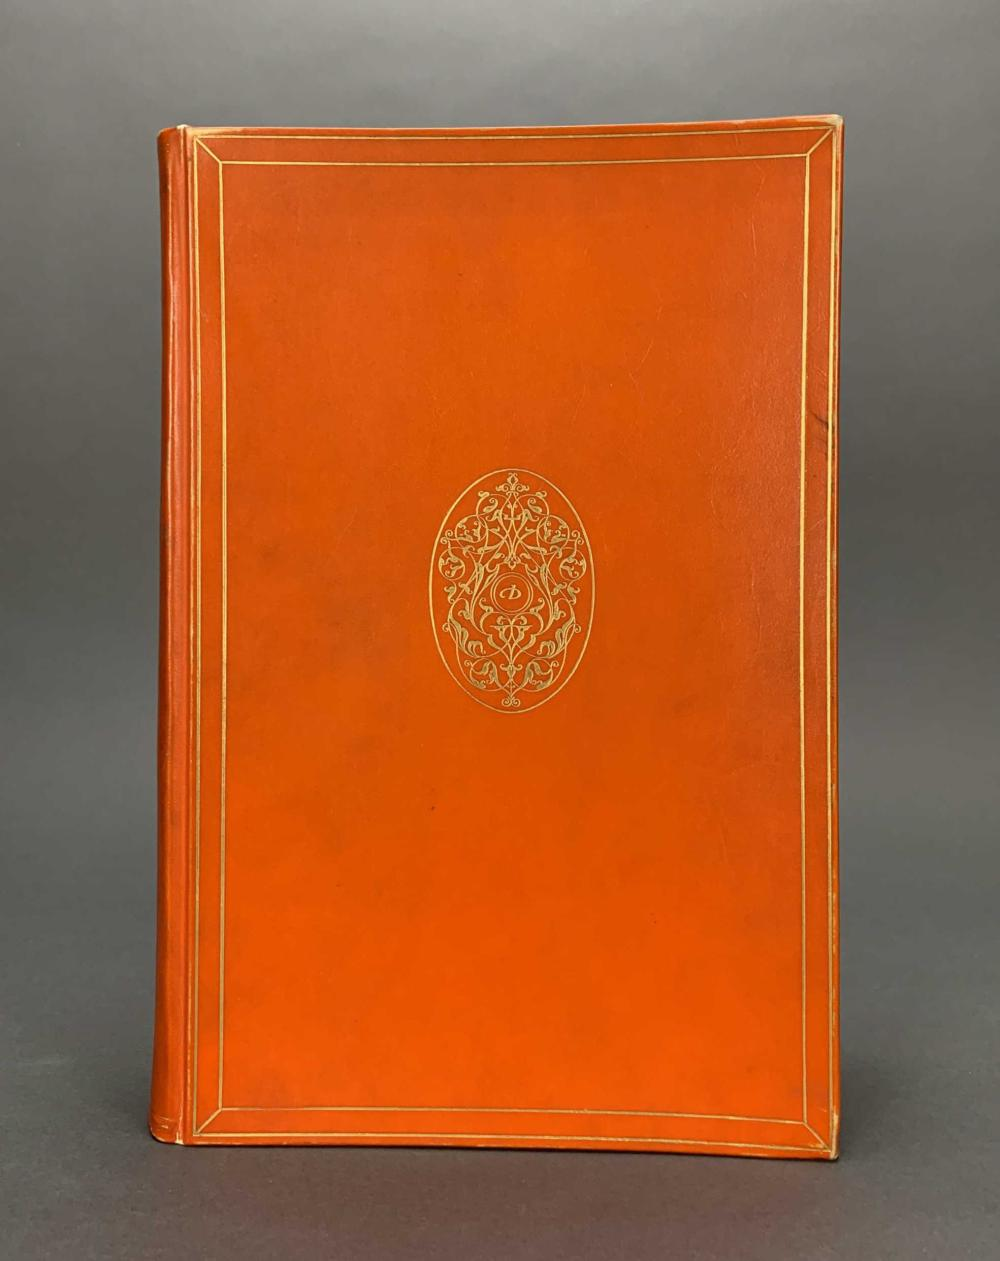 Lot 205: Dante. La Divina Commedia. Nonesuch Press. 1928.